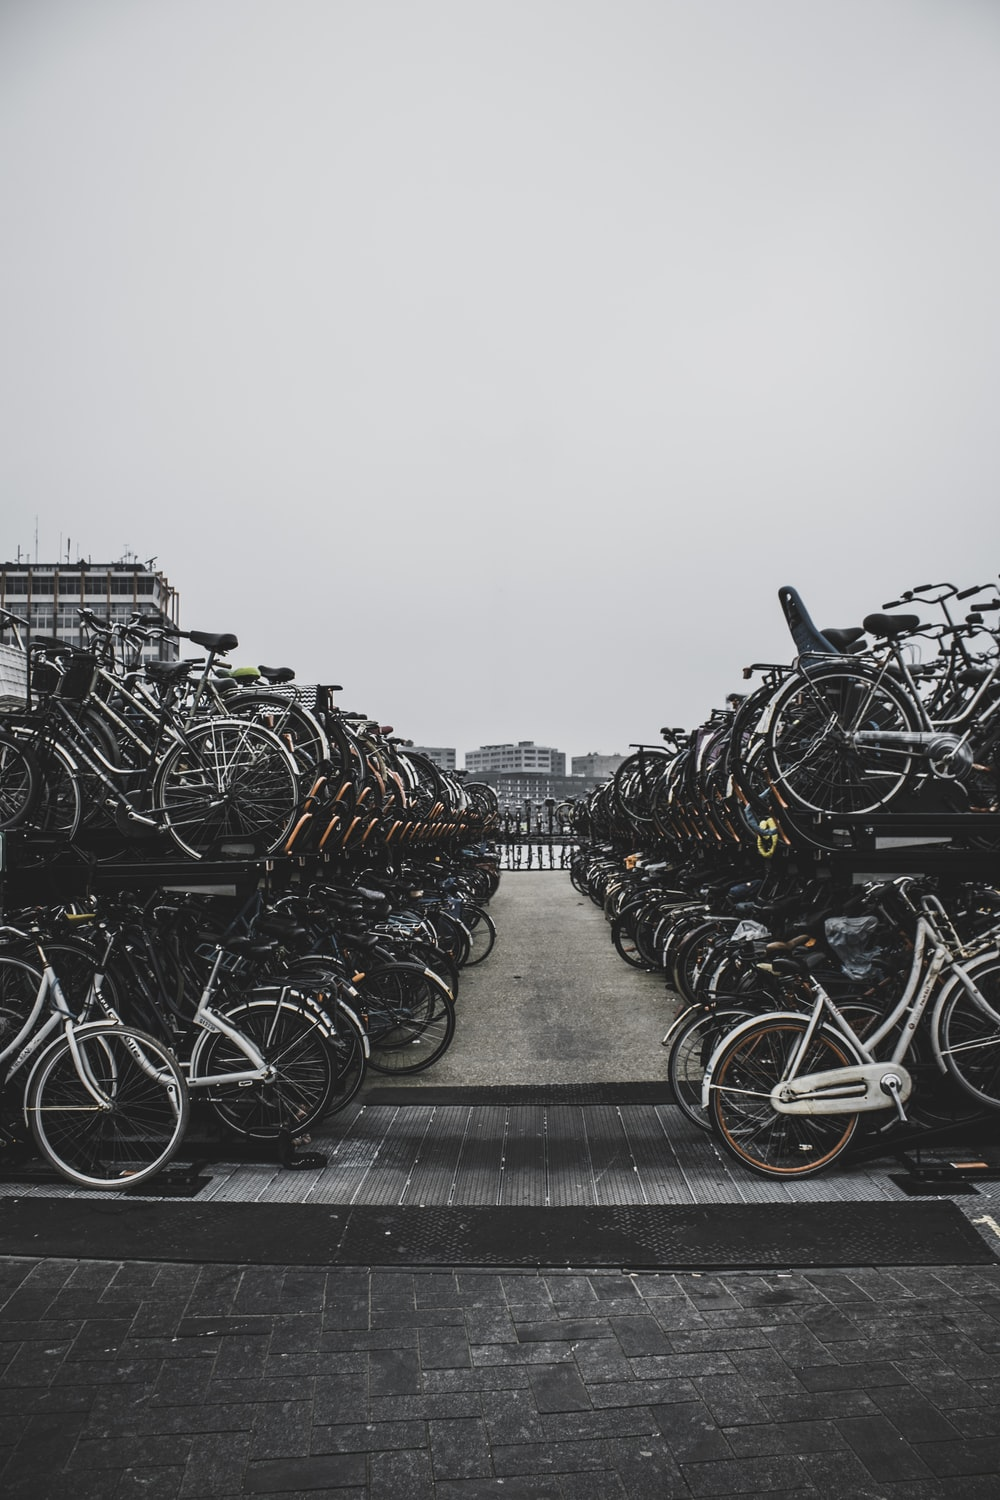 pile of bicycles outside during daytime